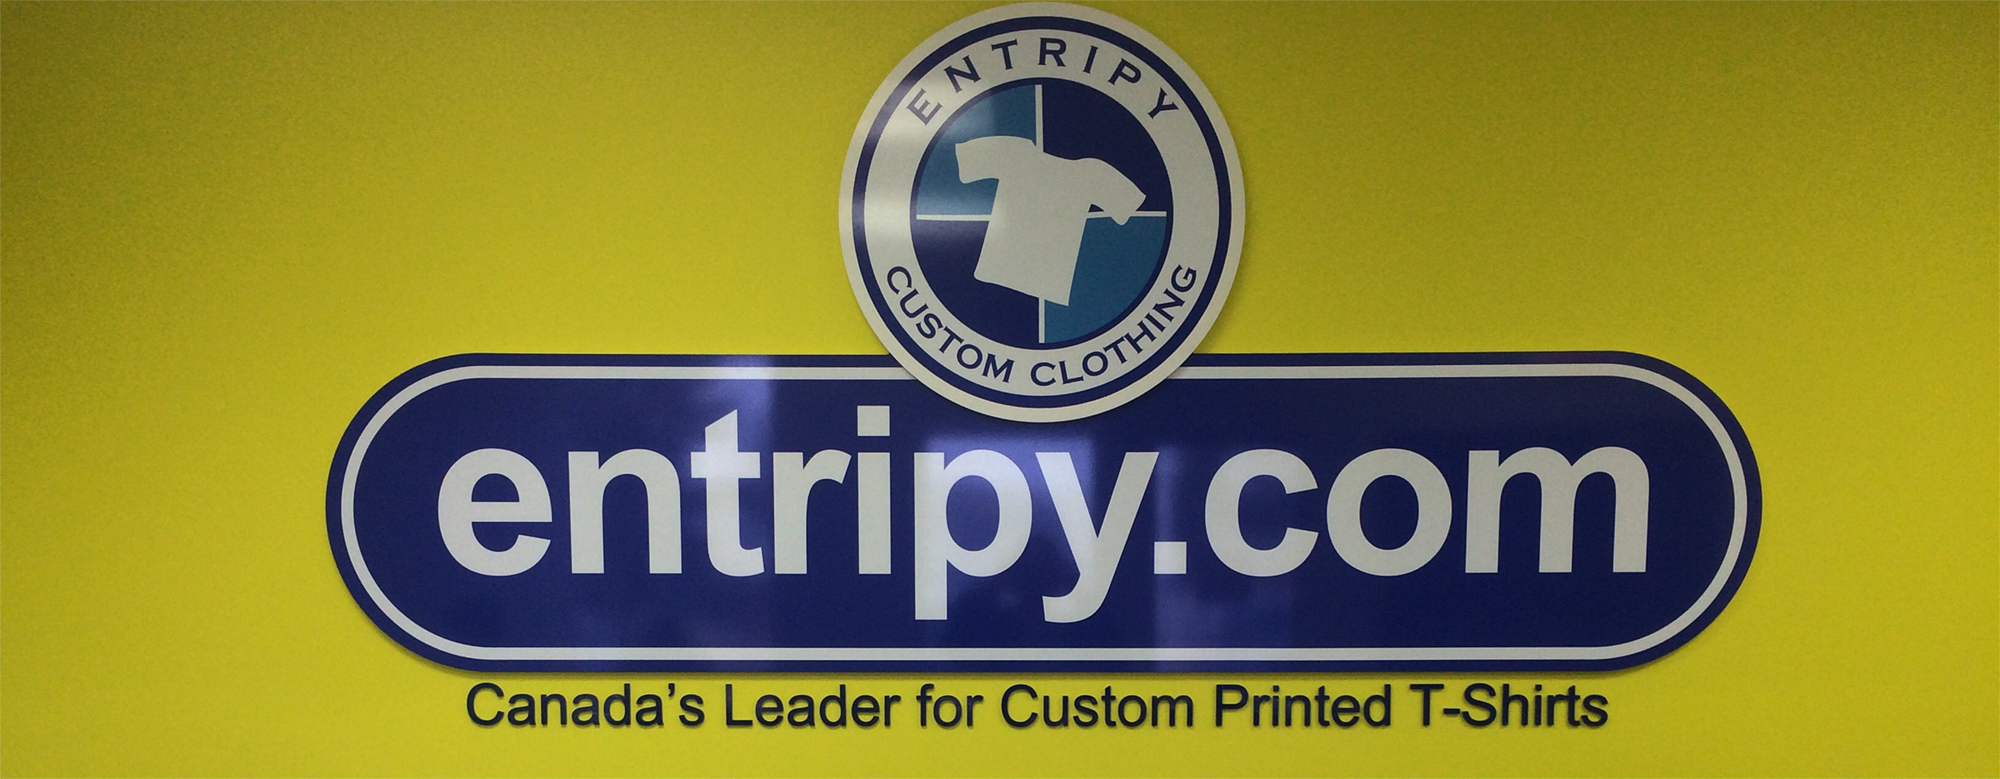 Entripy.com signage at the Entripy office in Oakville, Ontario.